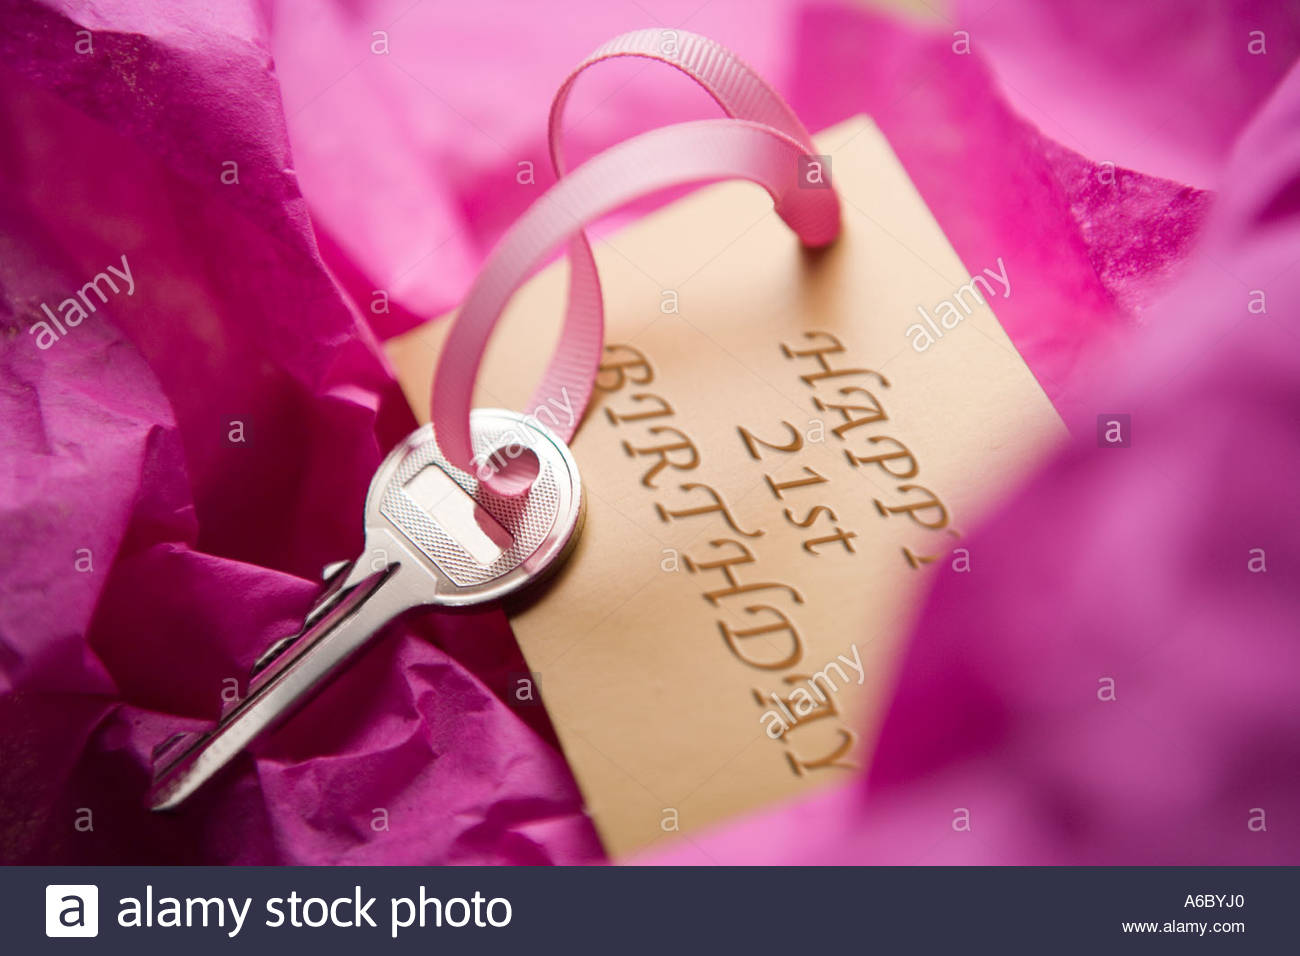 House key on gold gift tag saying Happy 21st Birthday - Stock Image